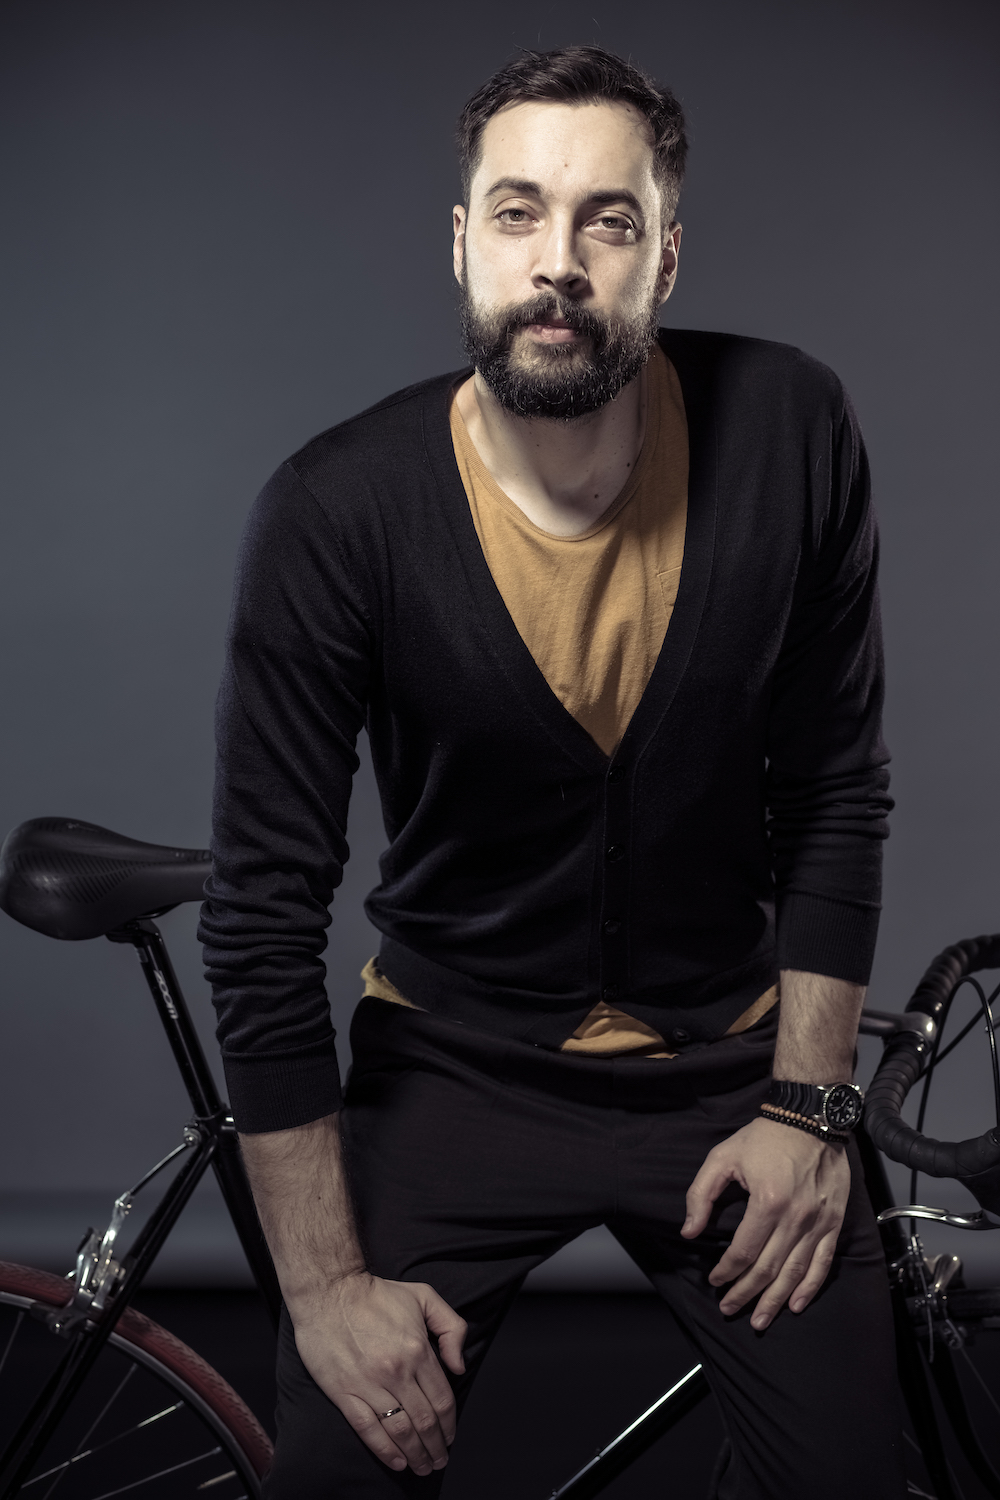 man wearing a black cardigan sitting on a bike